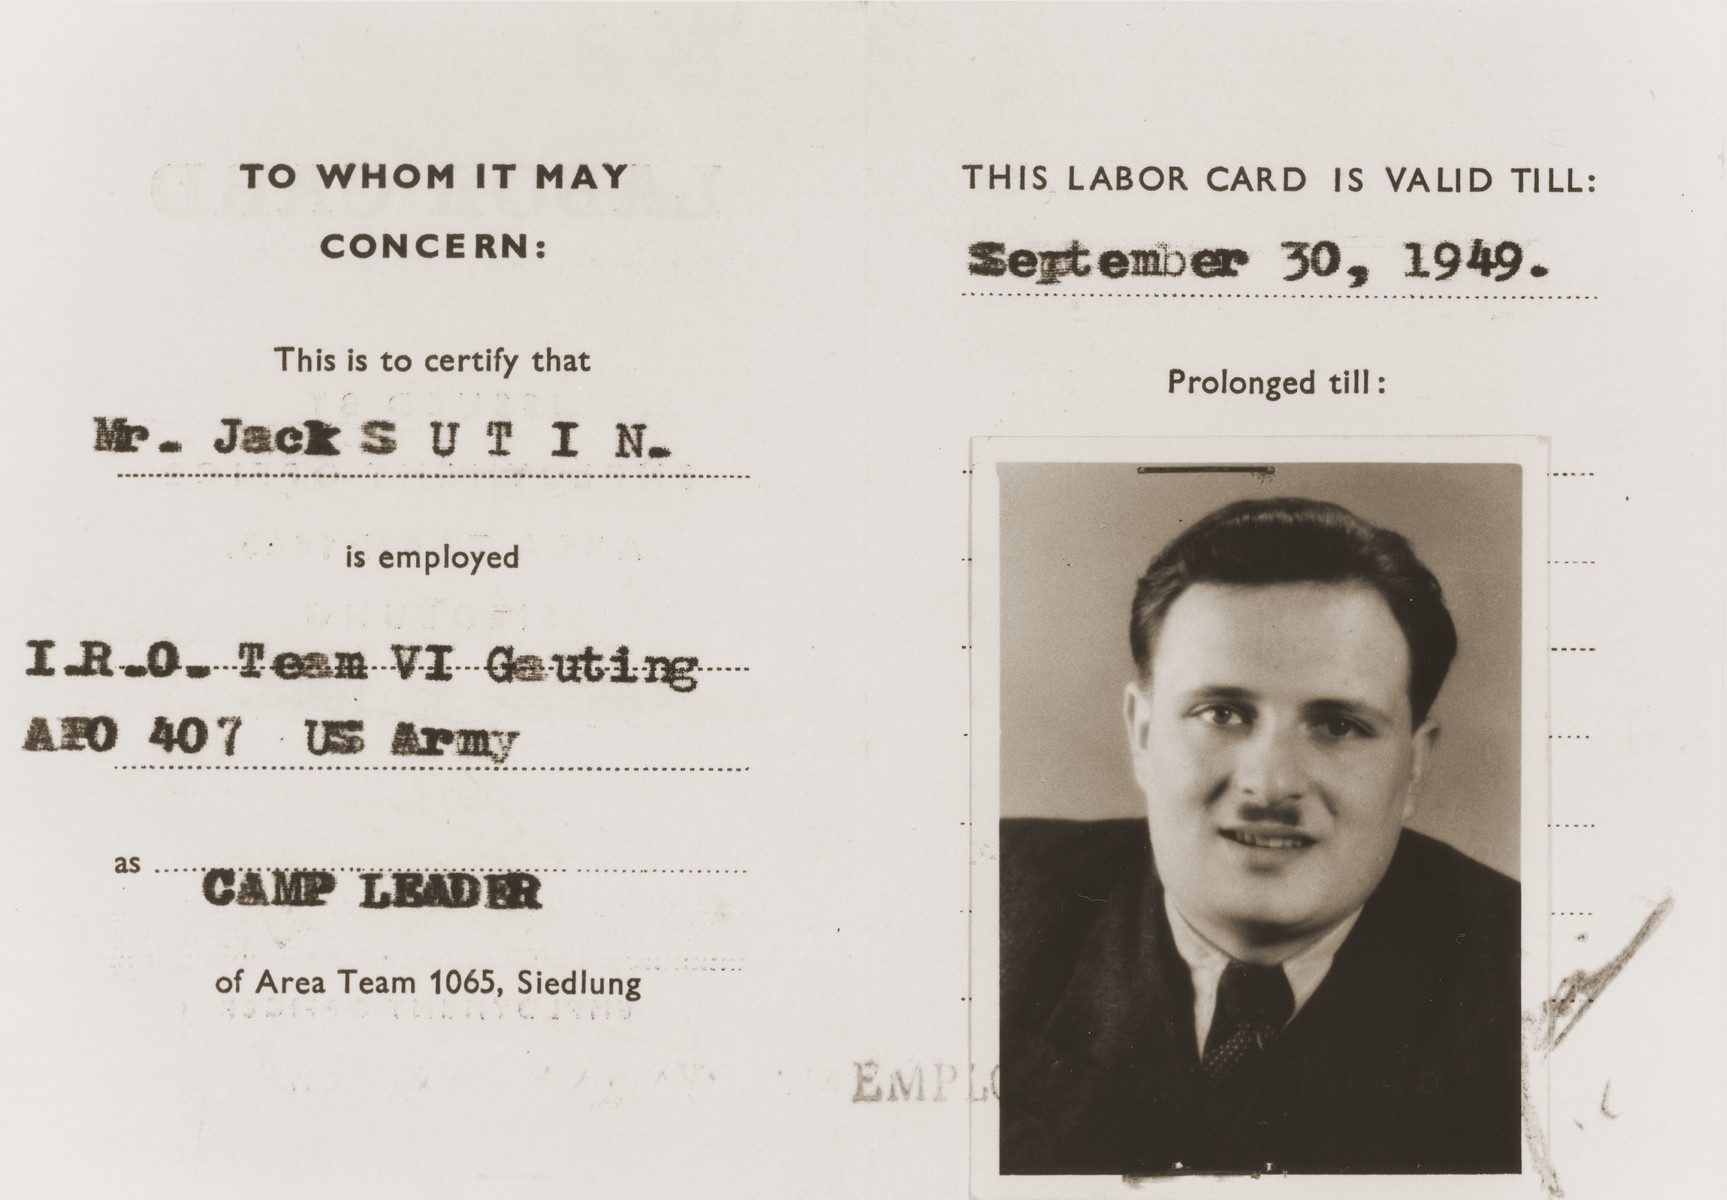 Identification card certifying that Jack Sutin is employed by the U.S. Army as Camp Leader of IRO Team VI Gauting.